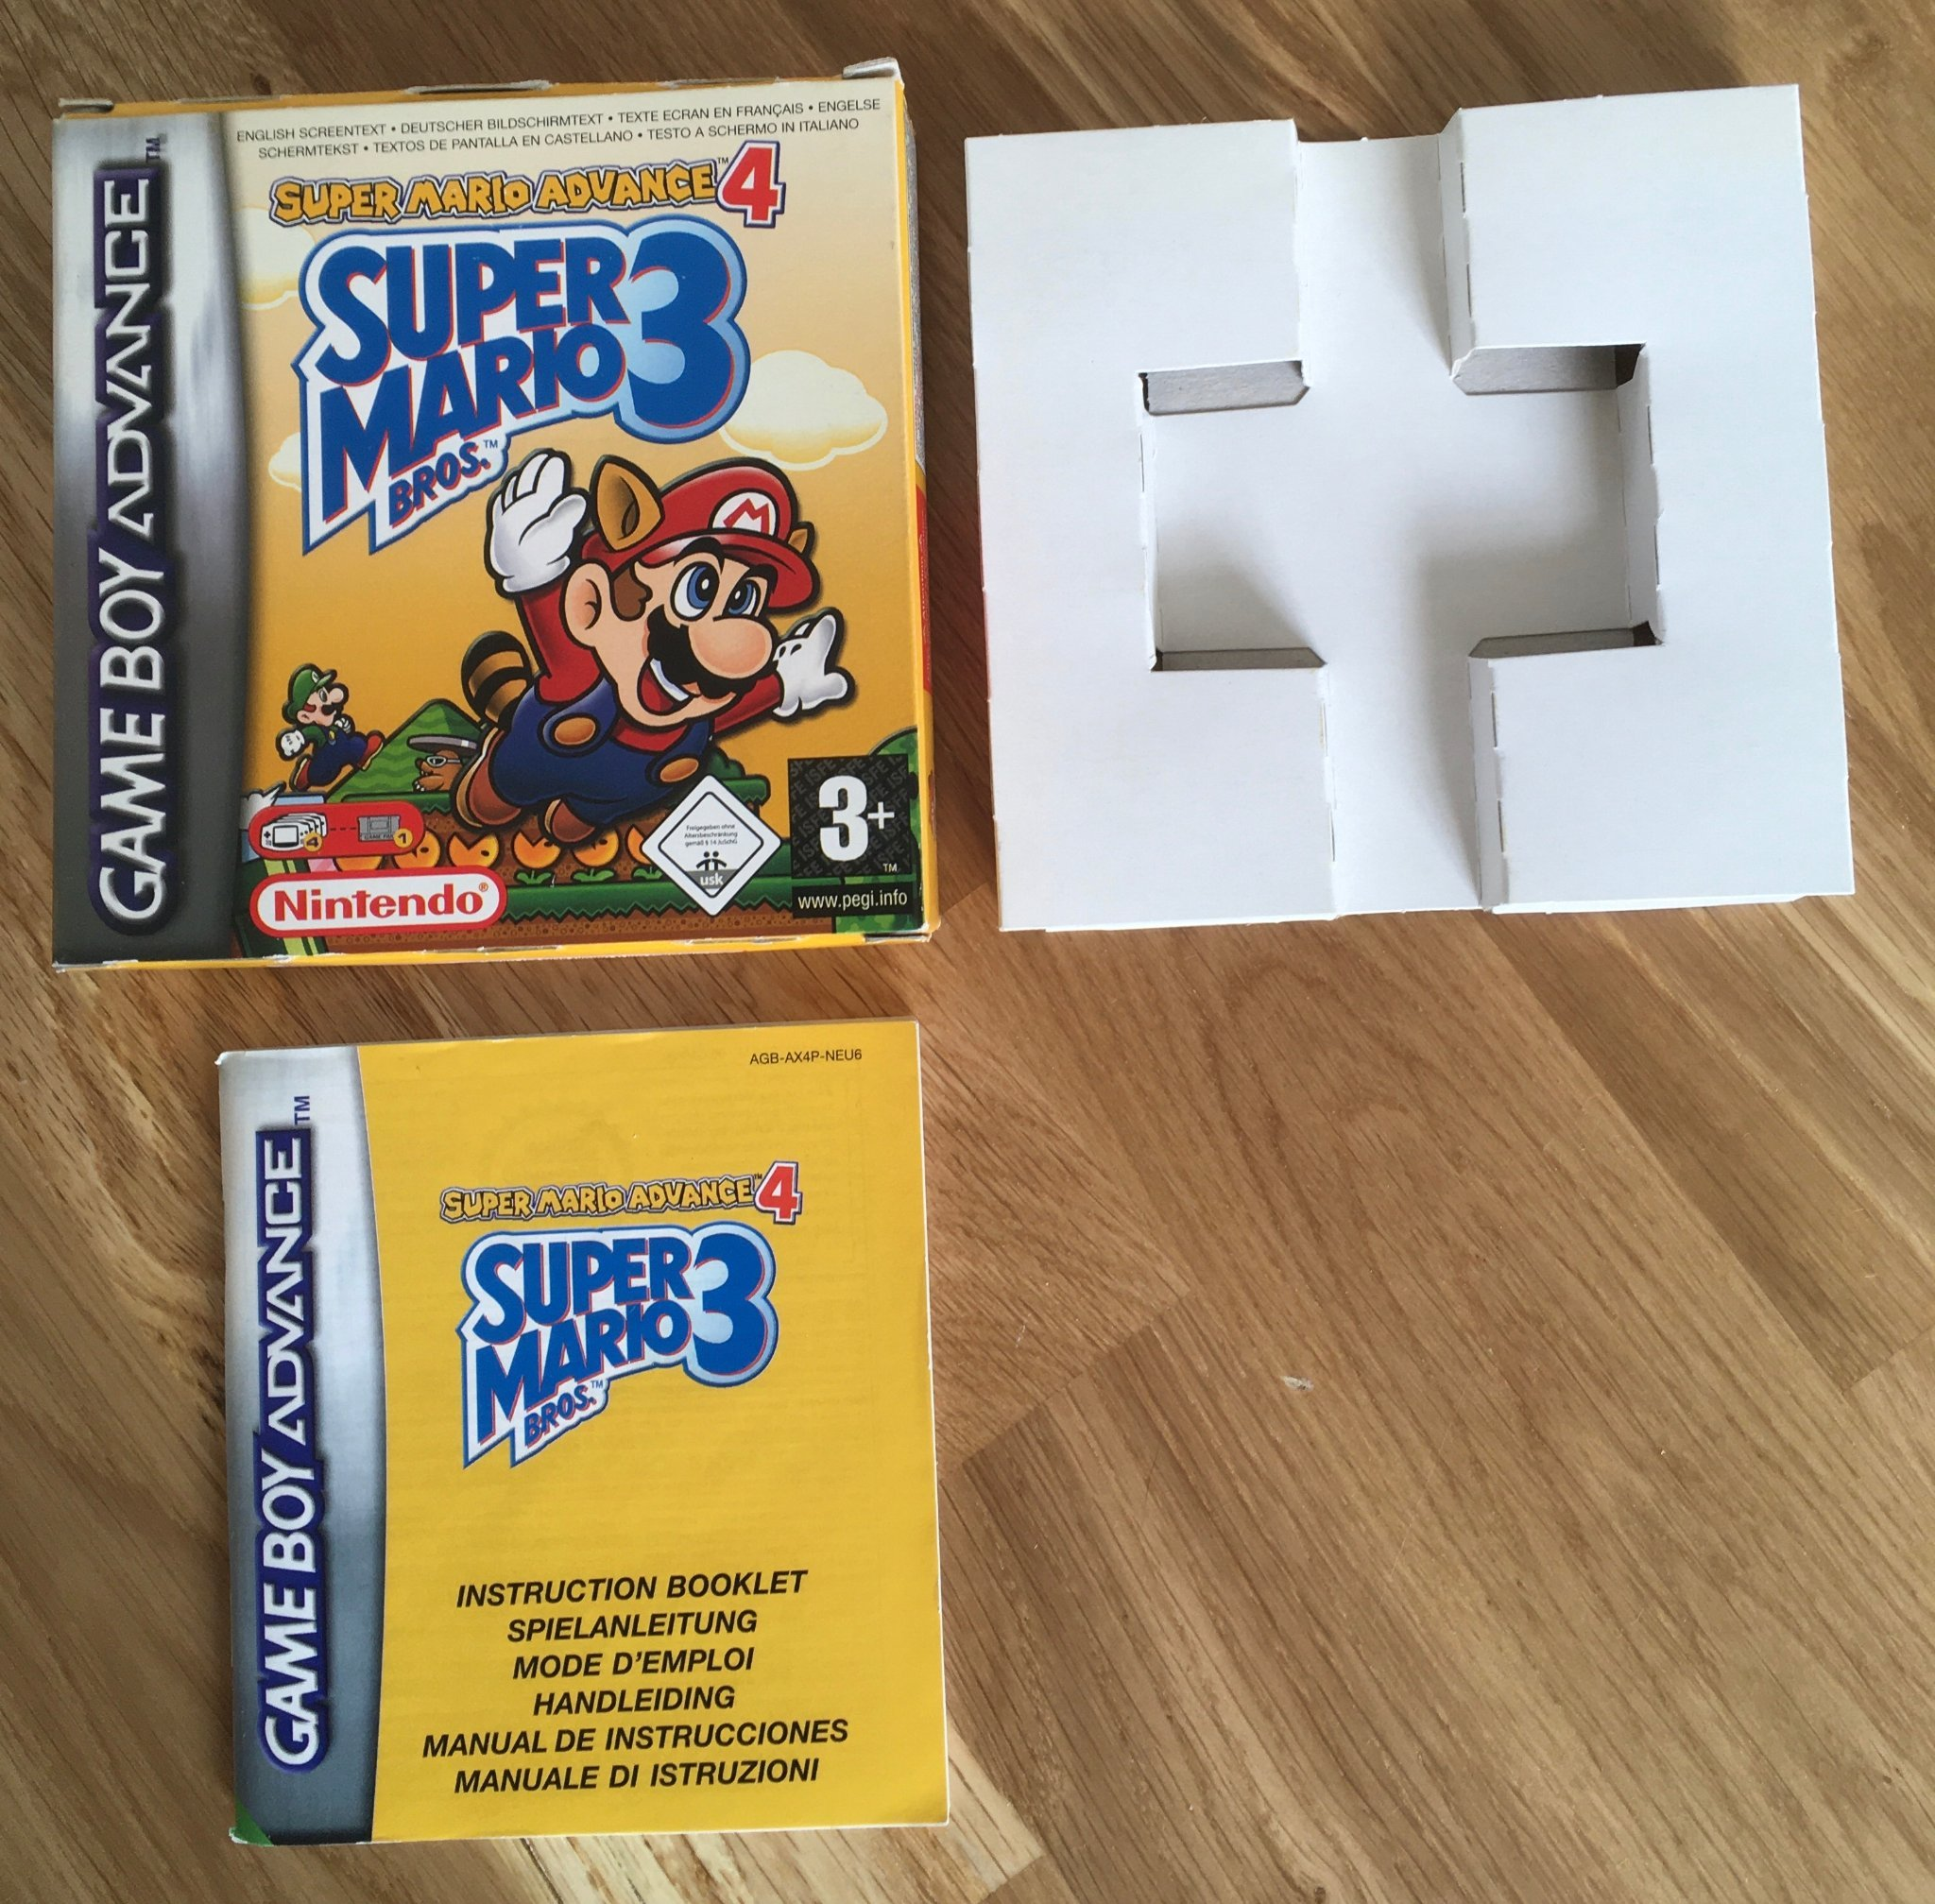 Super Mario Advance 4: Super Mario Bros 3 - GBA - Kartong och manual